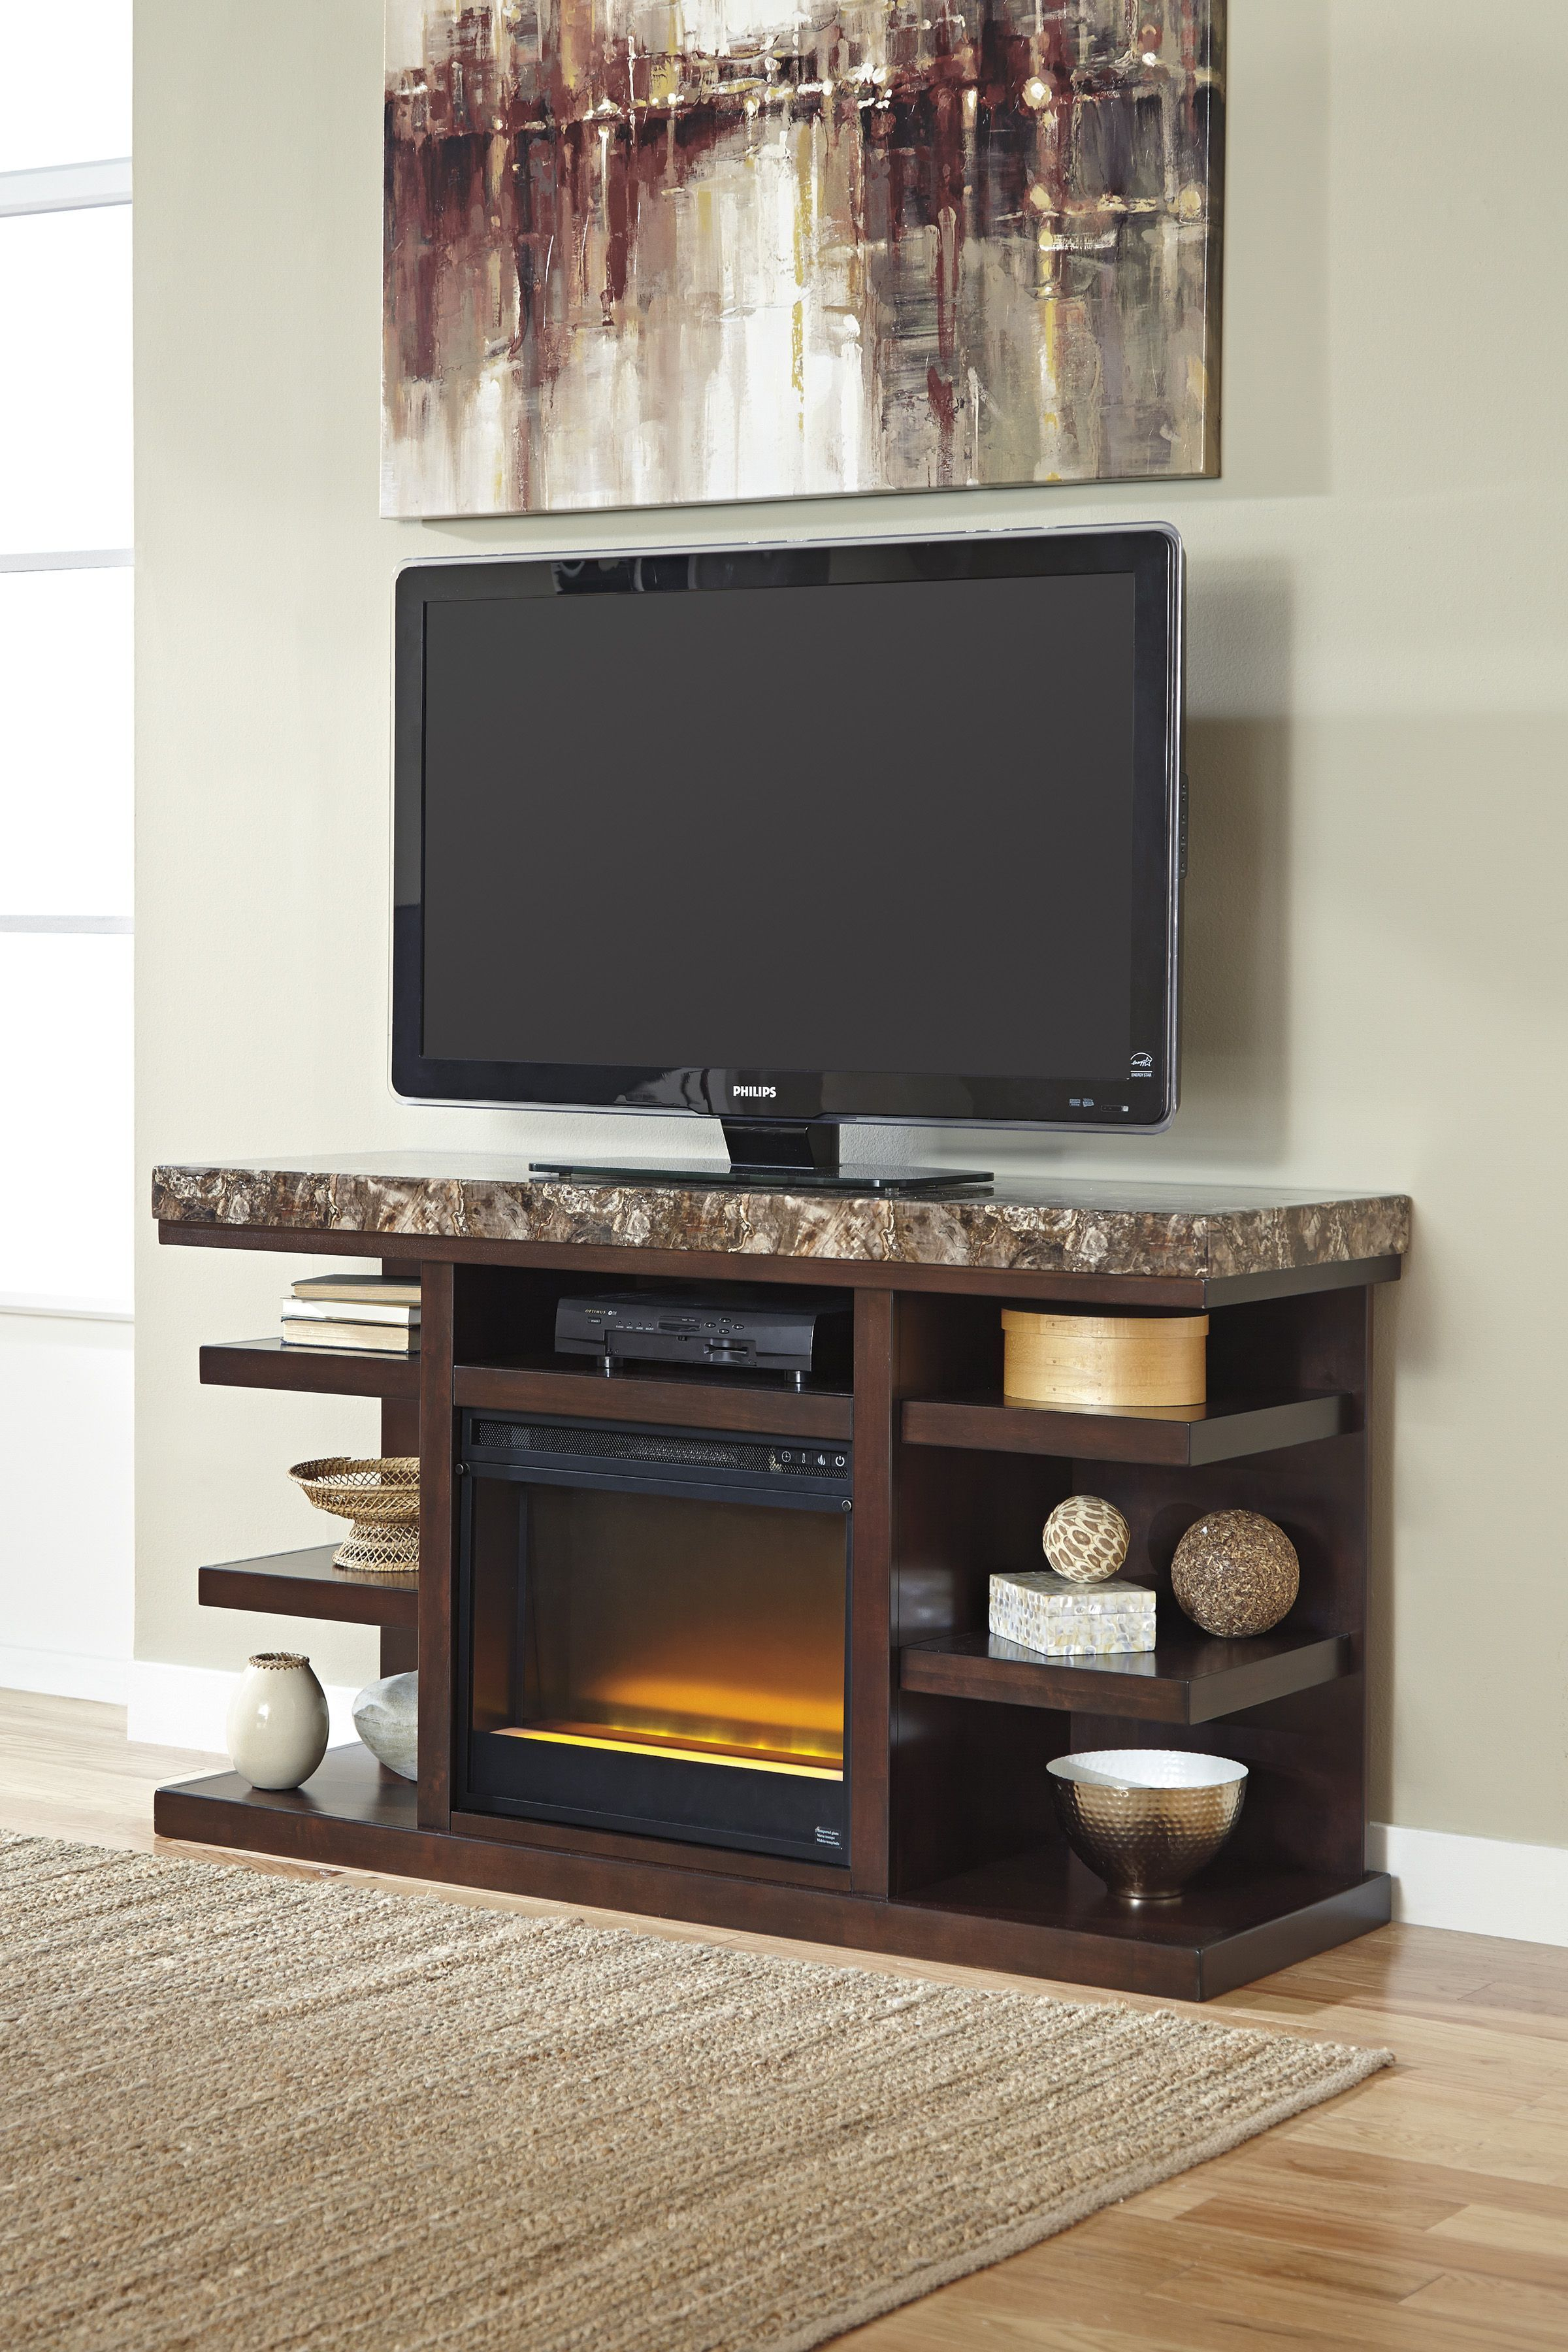 Dark Brown Lg Tv Stand With Glass/stone Fireplace | Projects To Try Intended For Edwin Black 64 Inch Tv Stands (View 3 of 30)